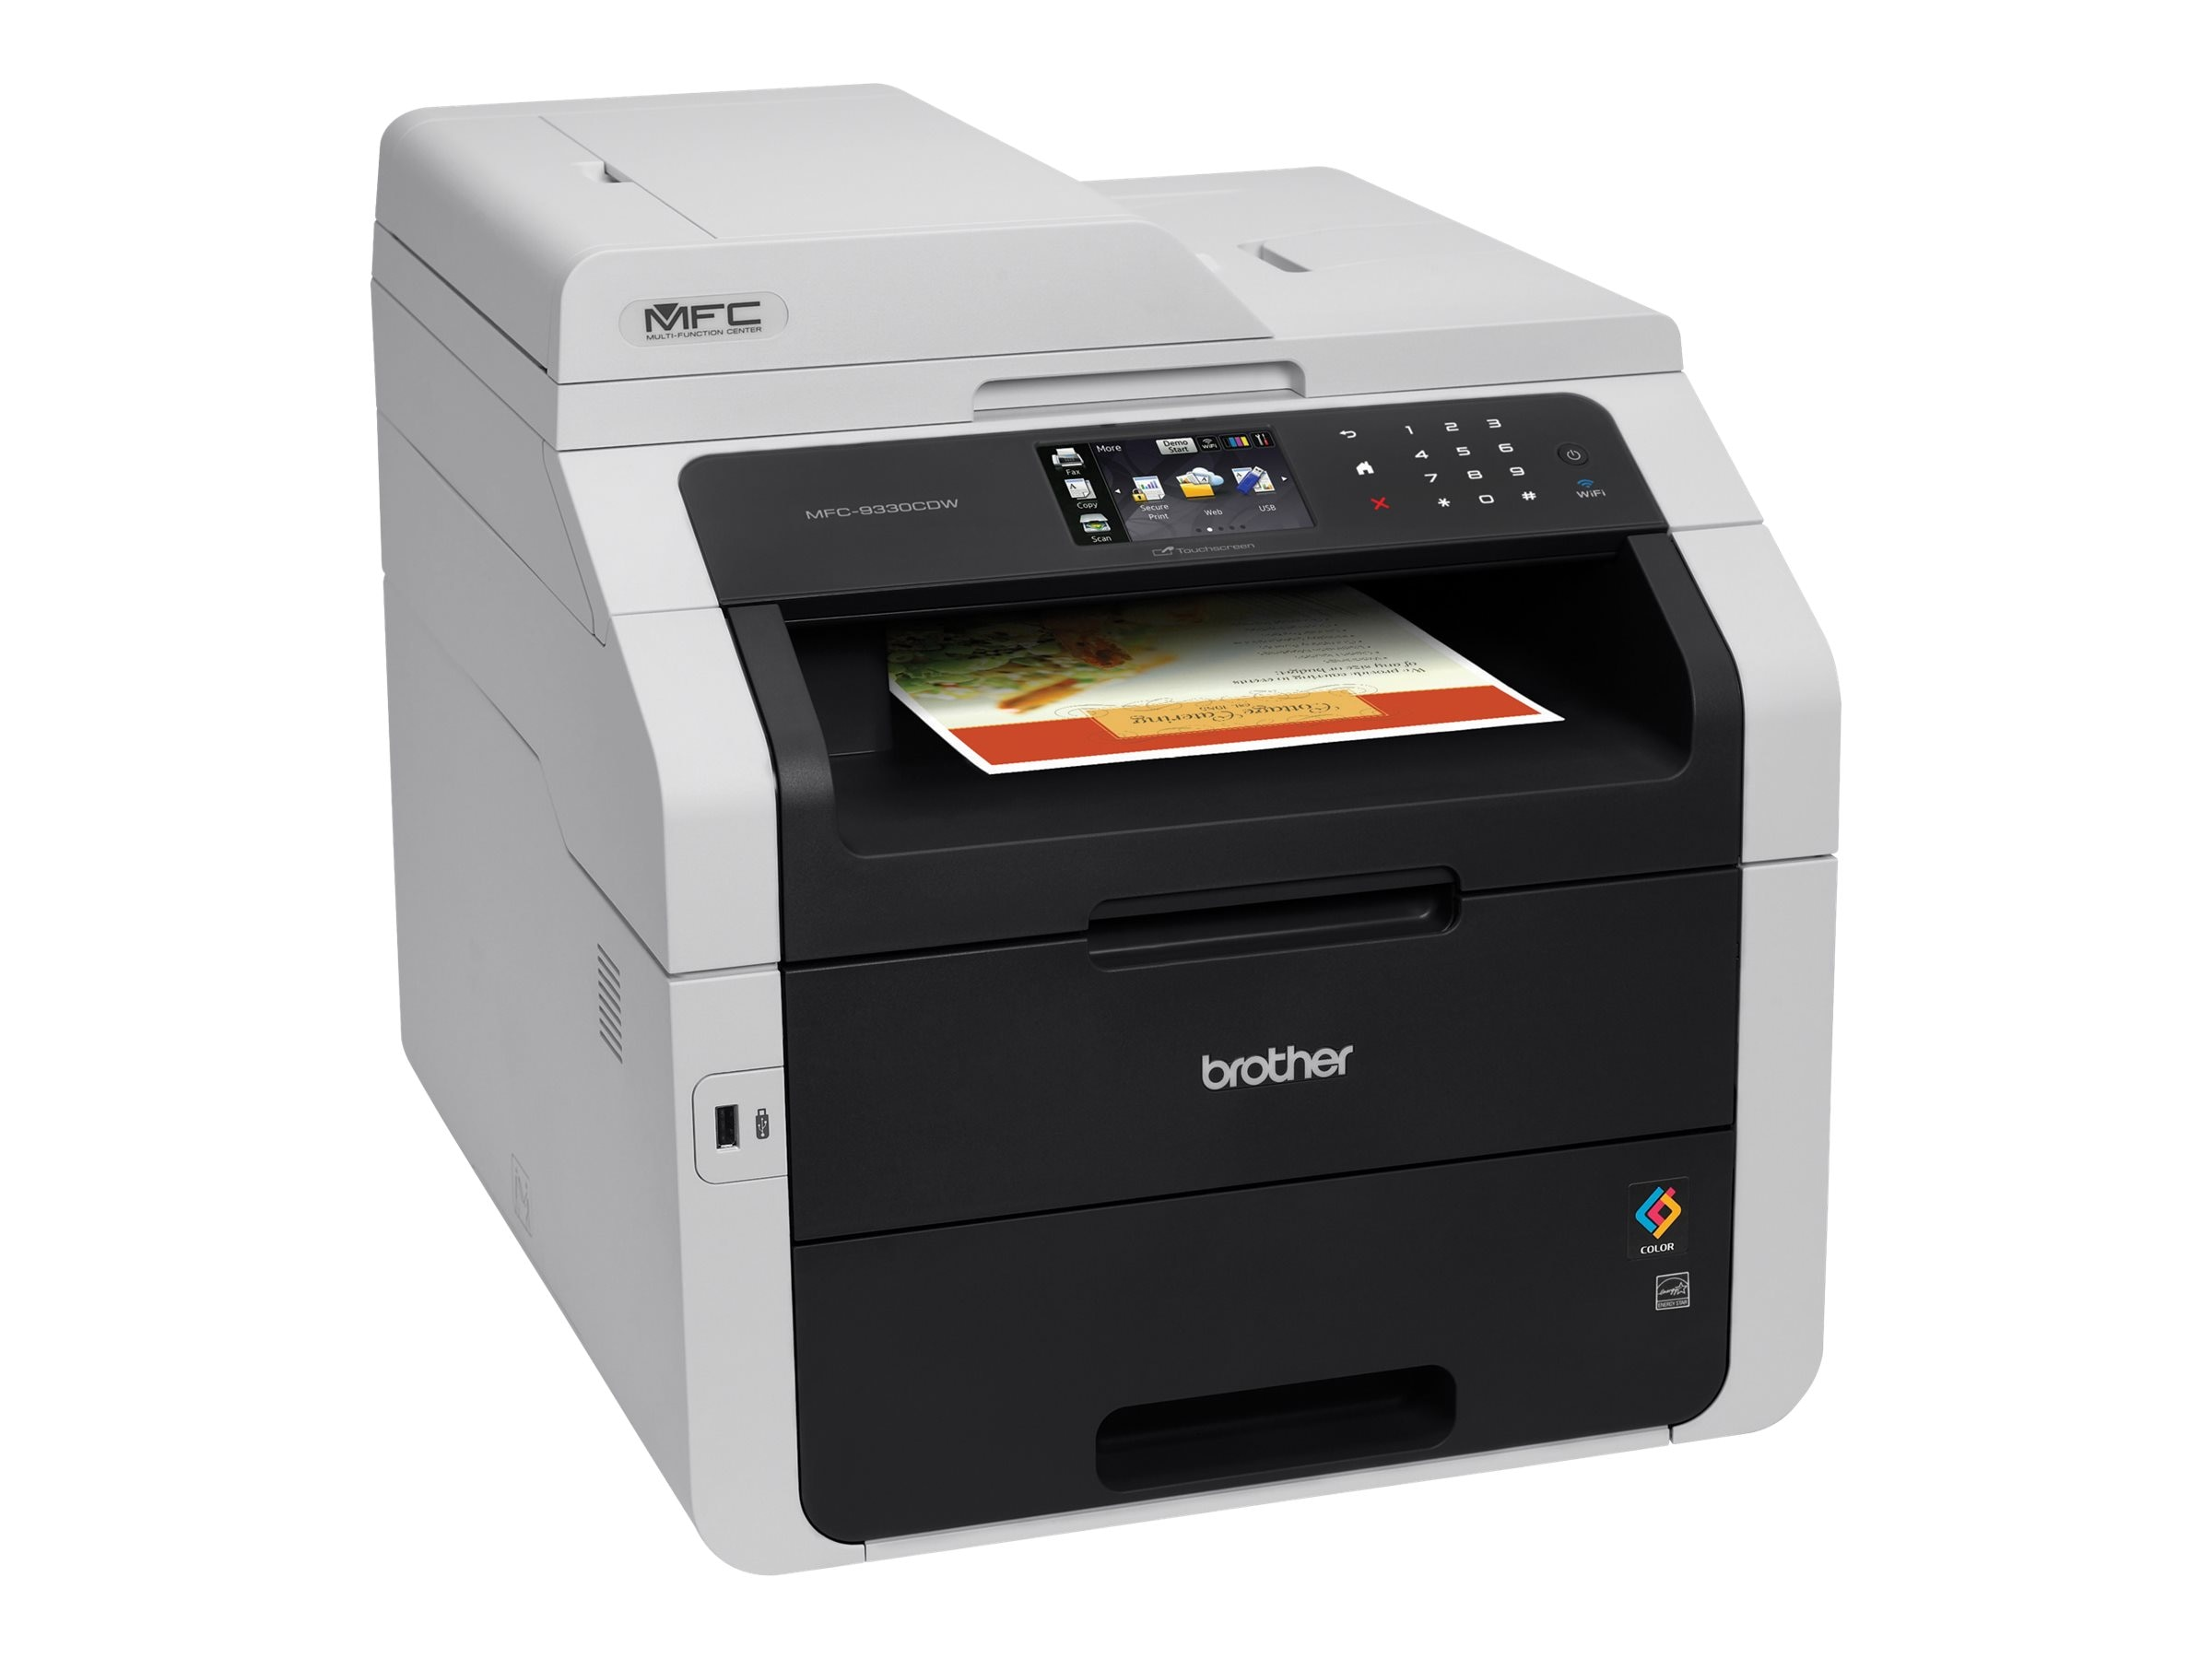 Brother MFC-9330CDW Image 3